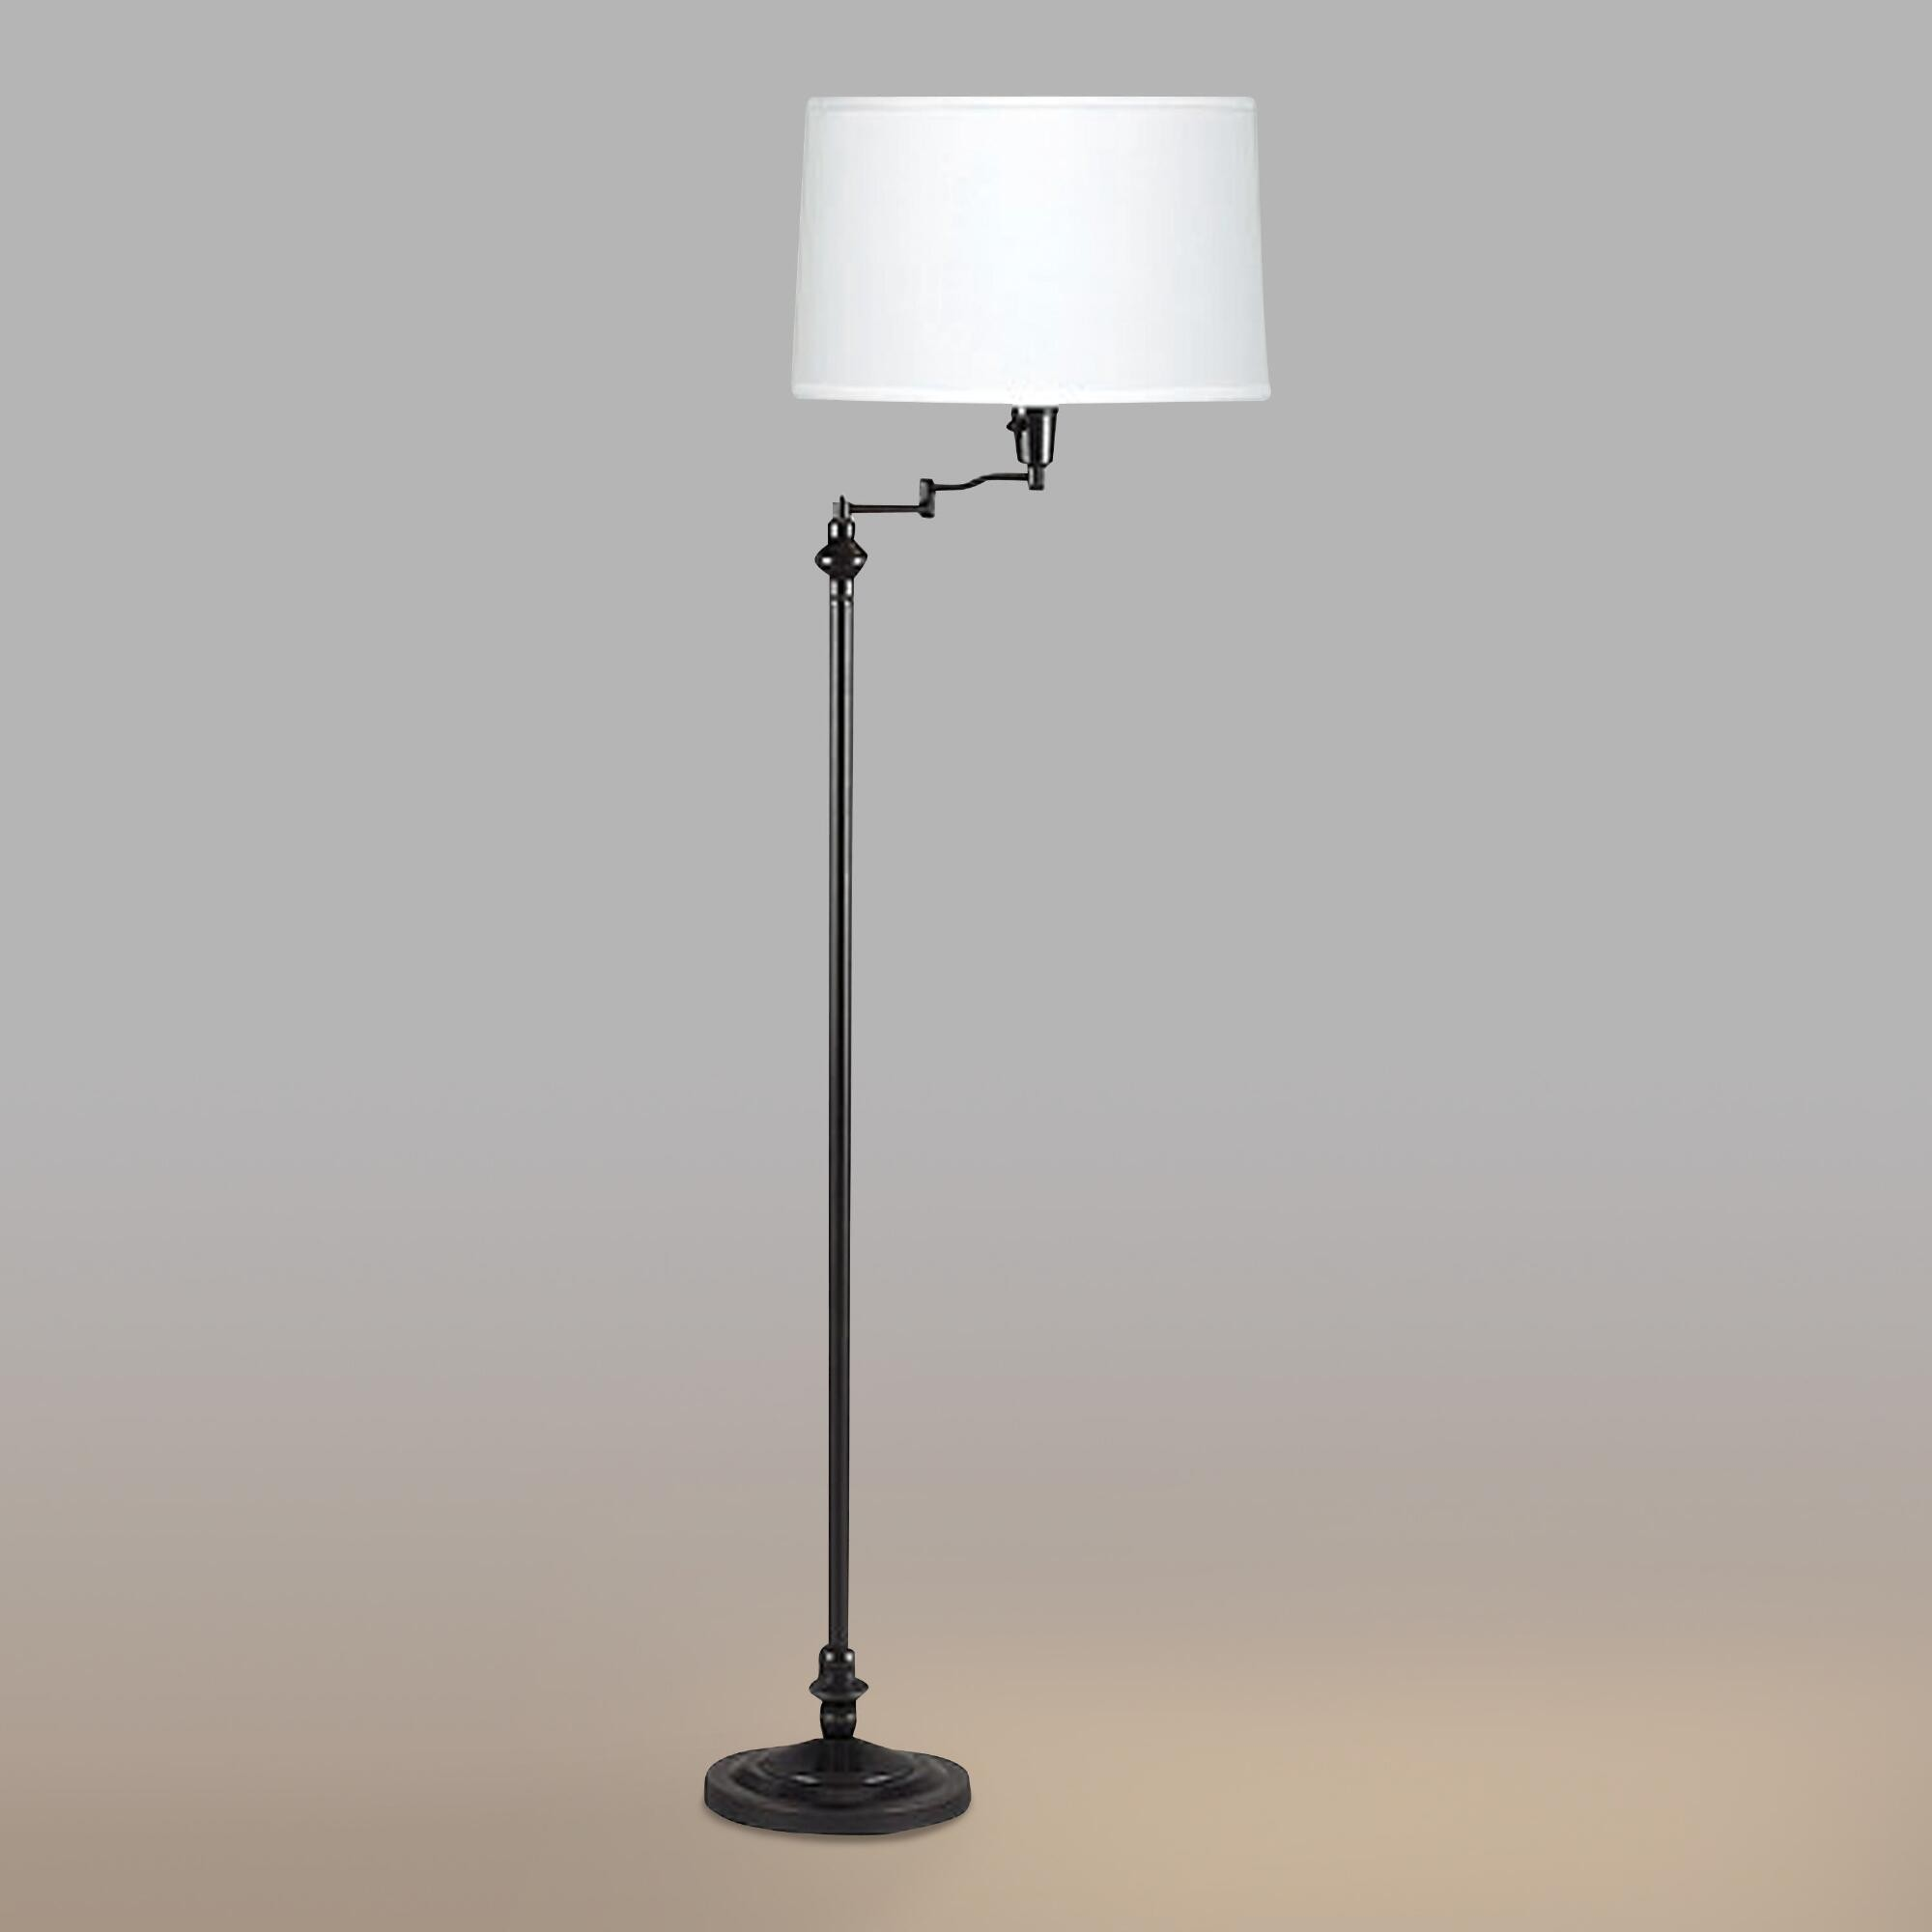 Fridays finds swing arm floor lamps and our winter living room fridays finds swing arm floor lamps and our winter living room aloadofball Images